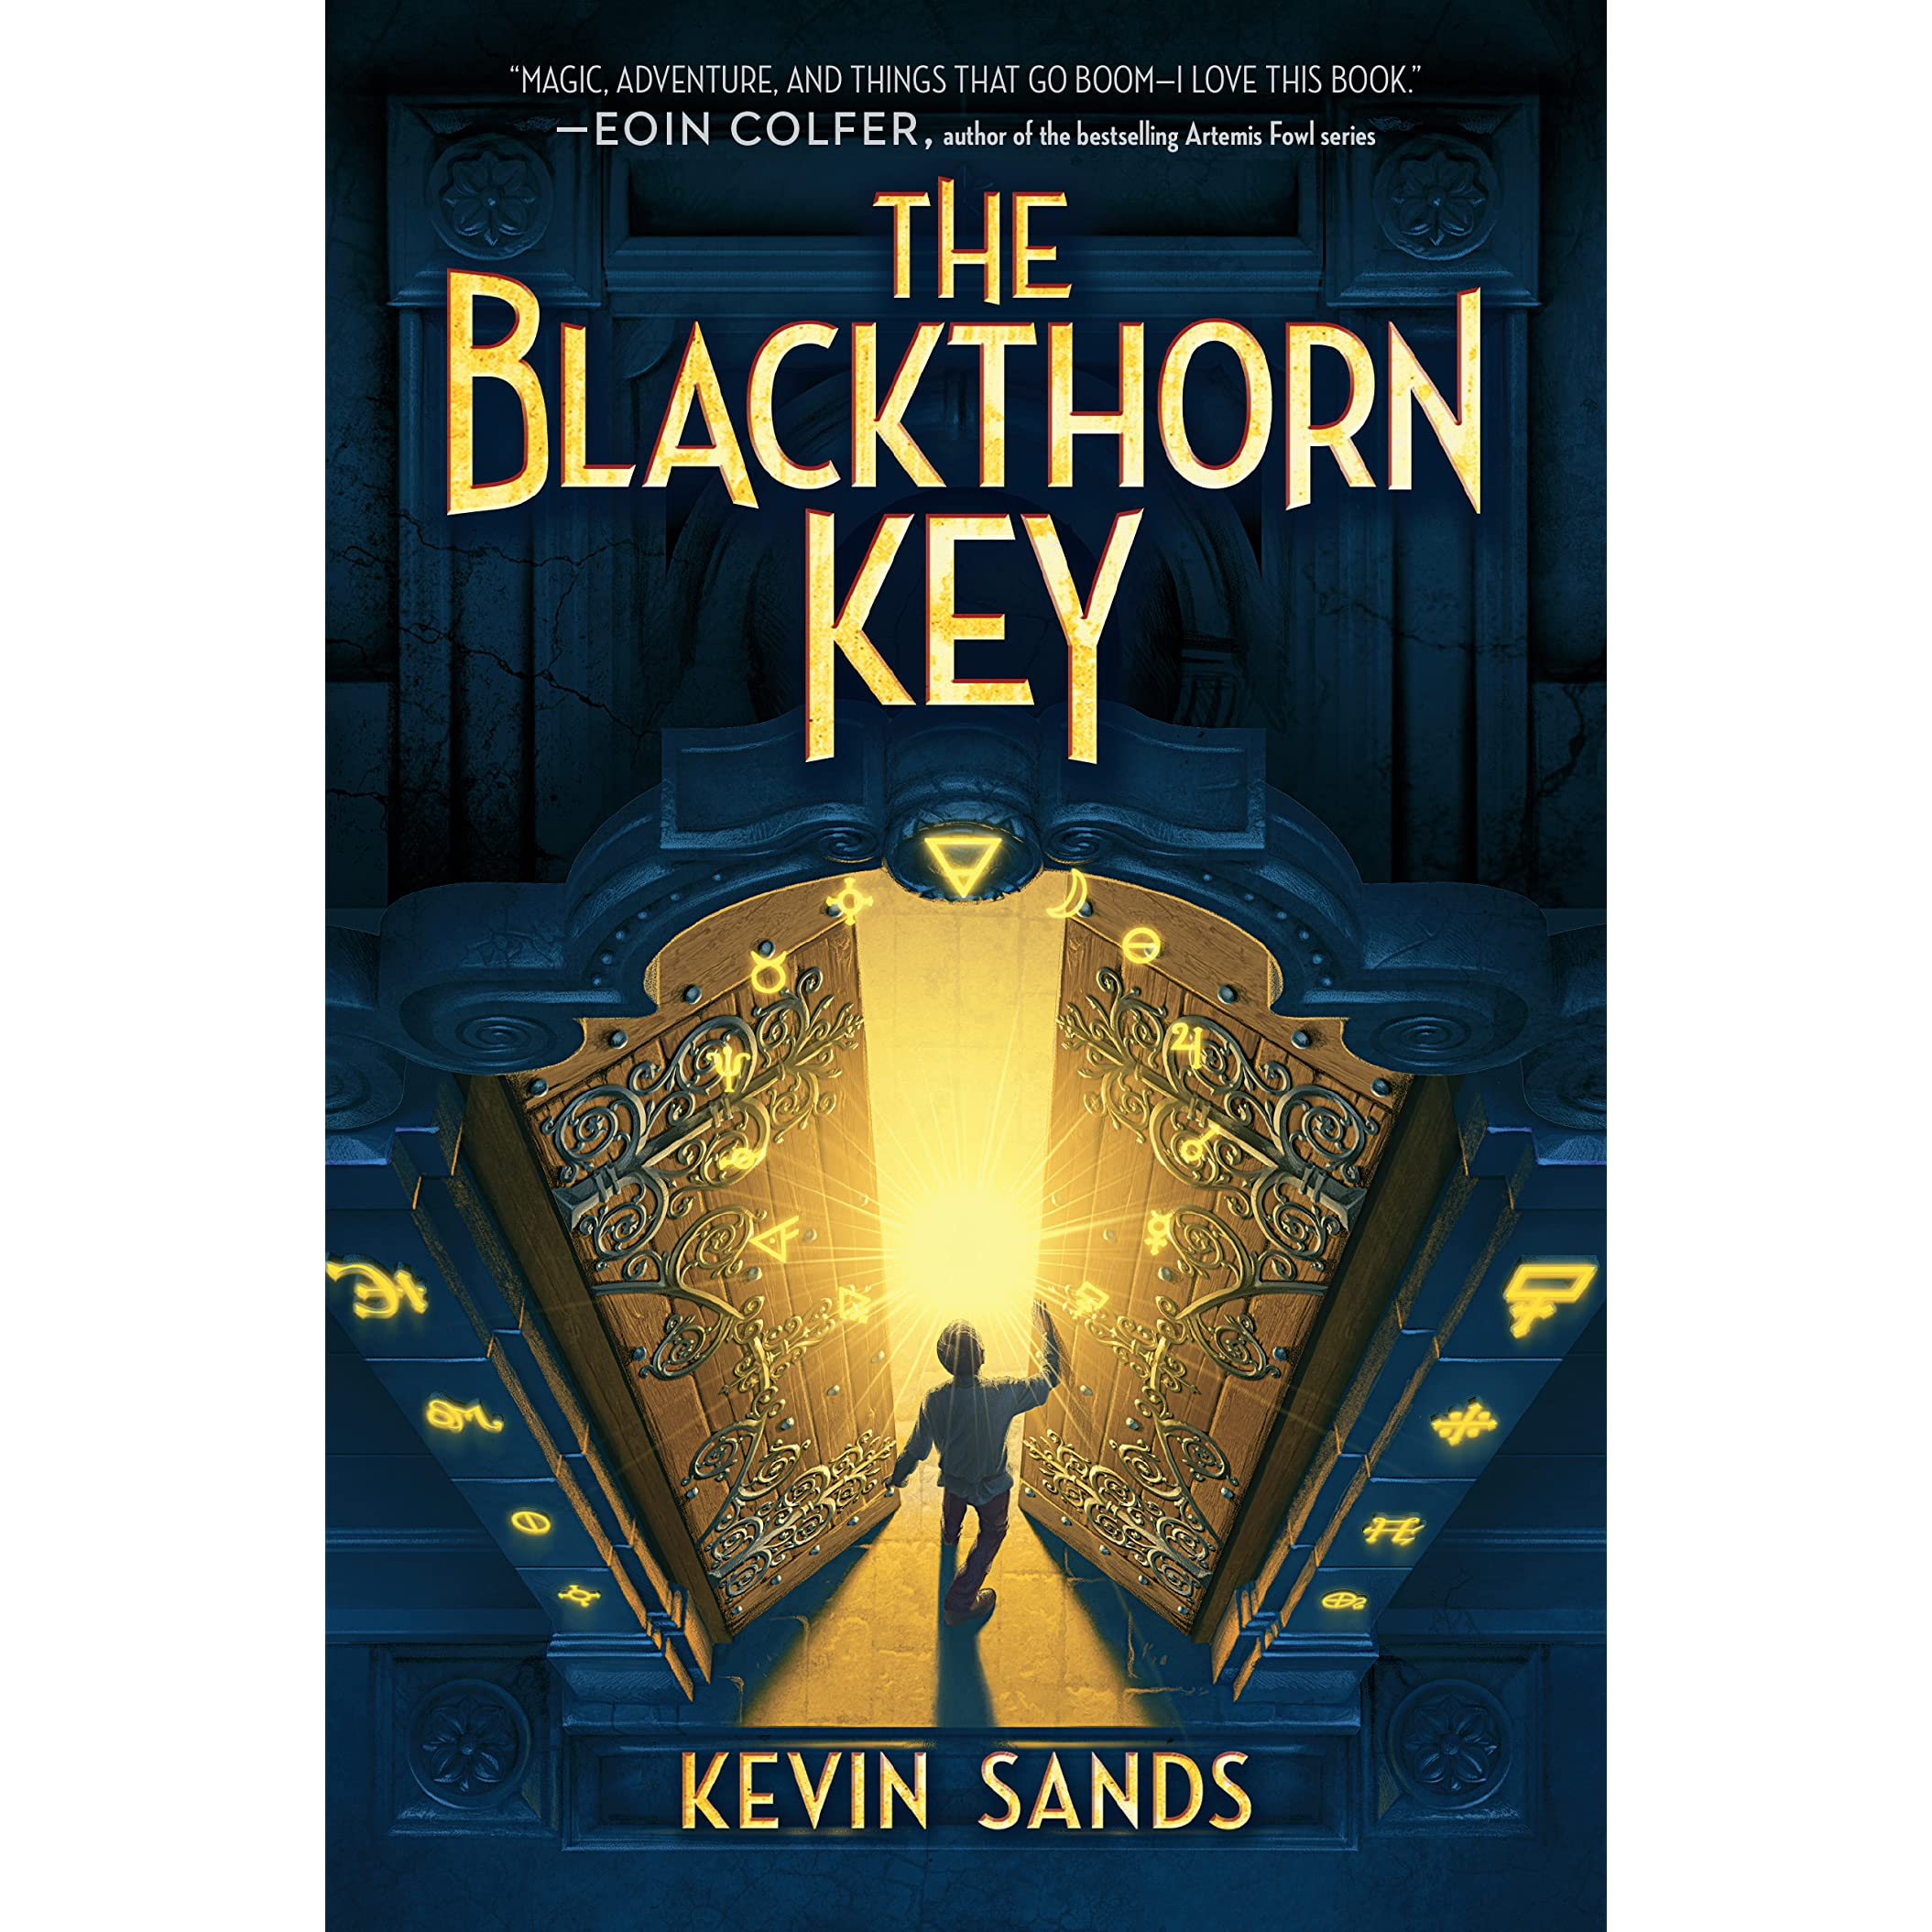 The blackthorn key the blackthorn key 1 by kevin sands fandeluxe Choice Image